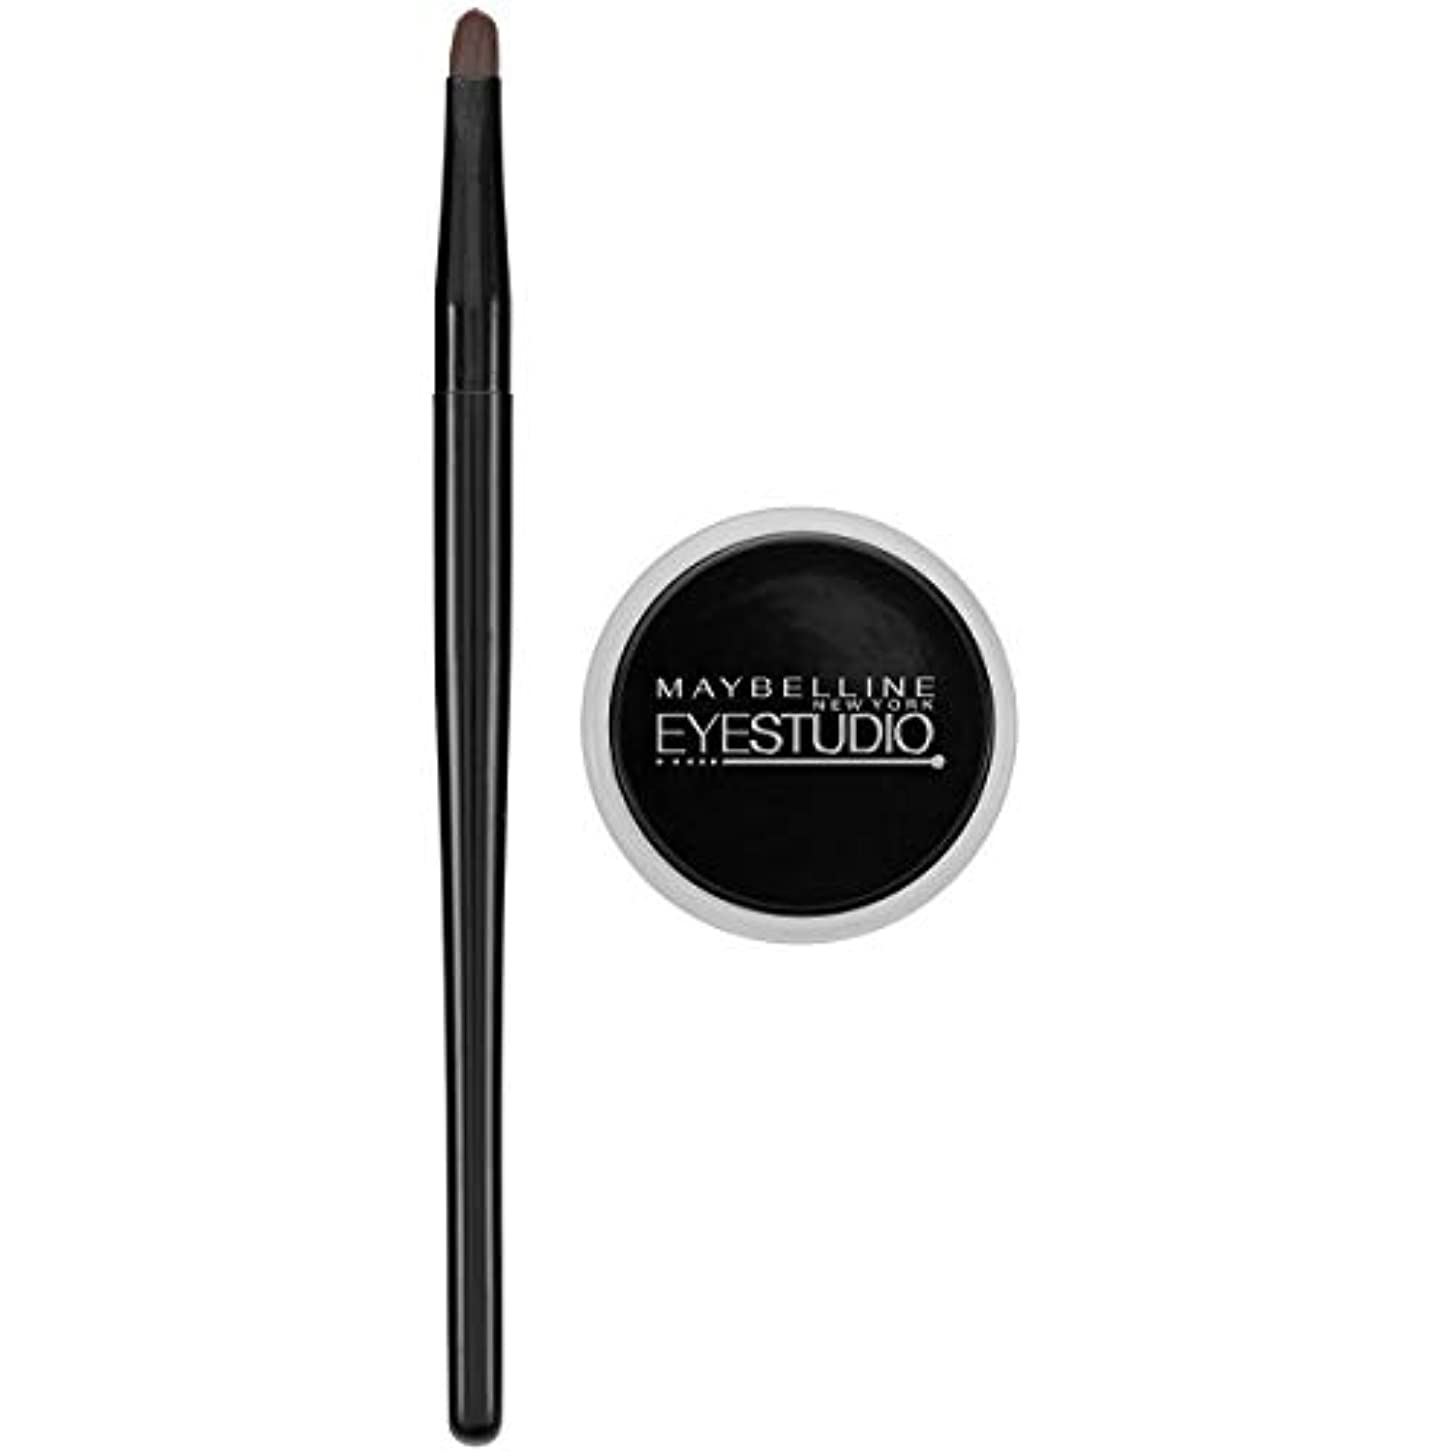 思いやりのある賄賂愛MAYBELLINE Eye Studio Lasting Drama Gel Eyeliner - Blackest Black 950 (並行輸入品)